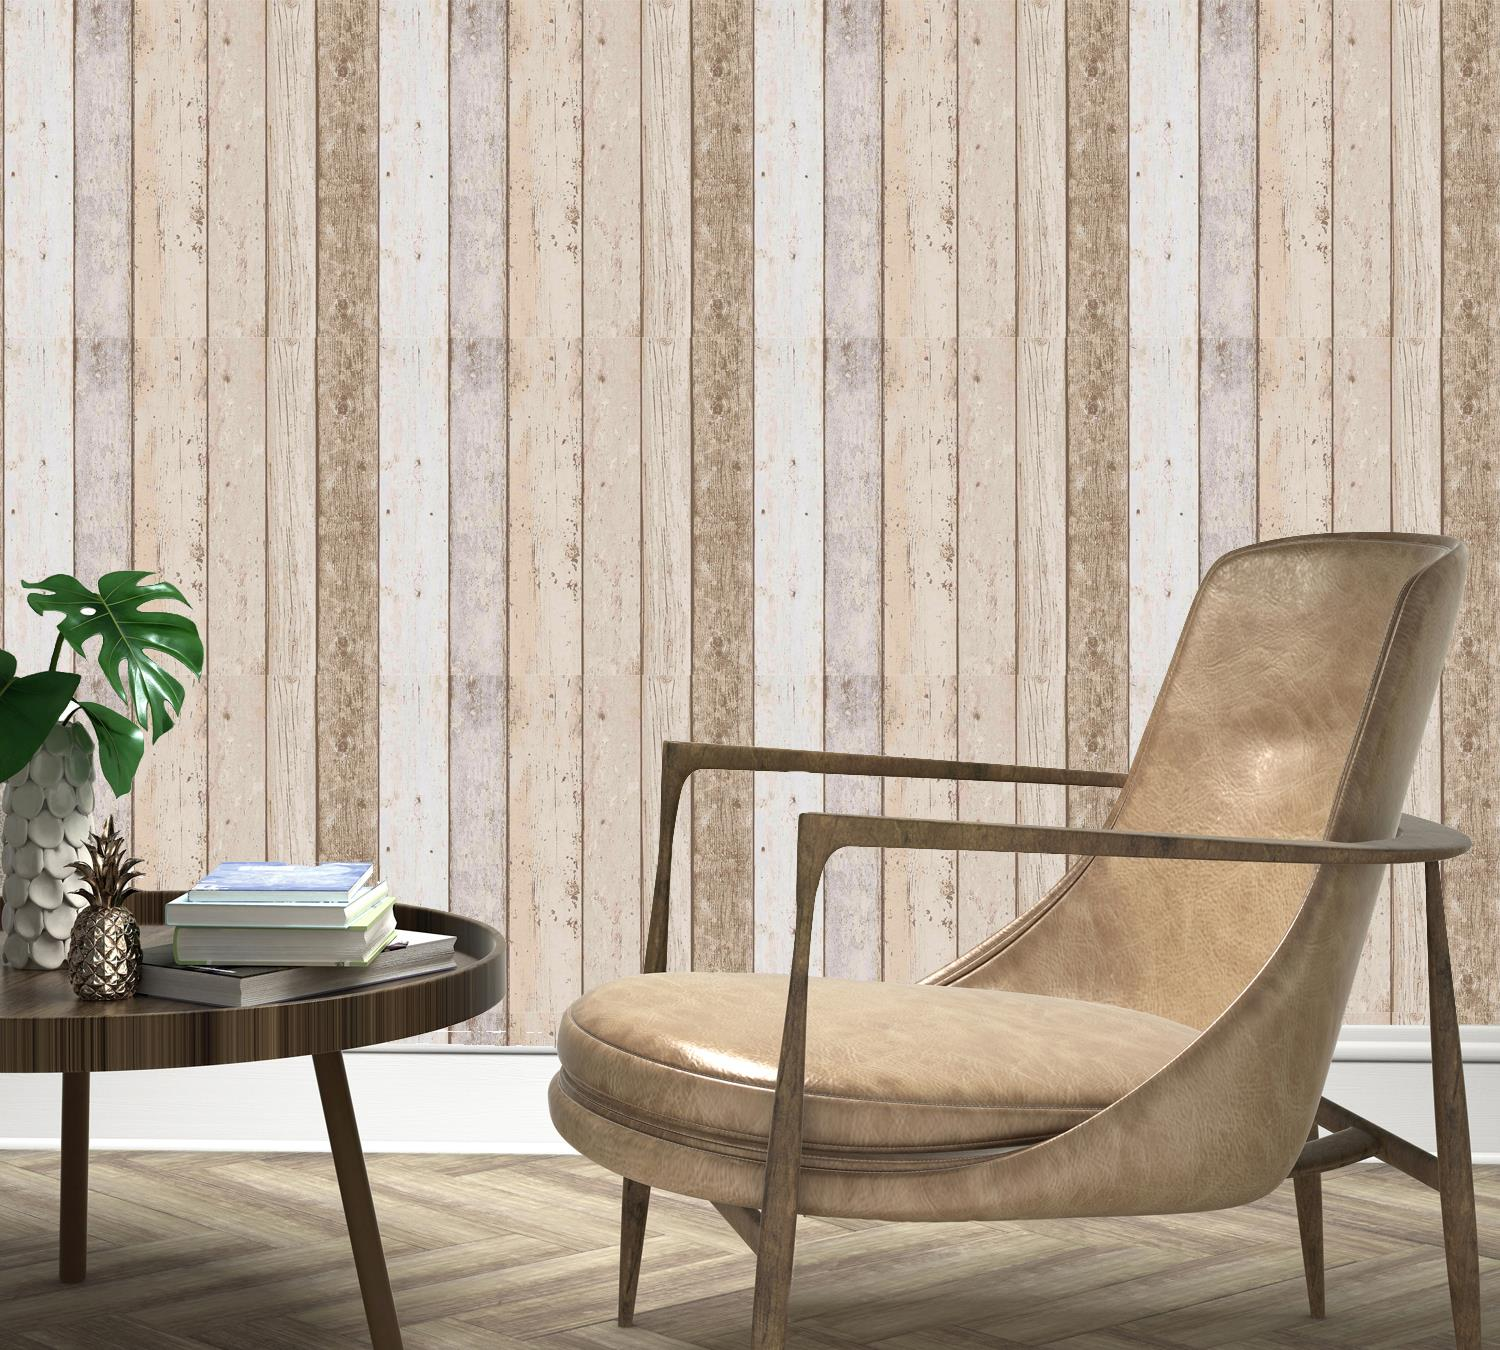 3D Effect Wood Panel Plank Wallpaper Distressed Cream Brown Beige A.S Creation